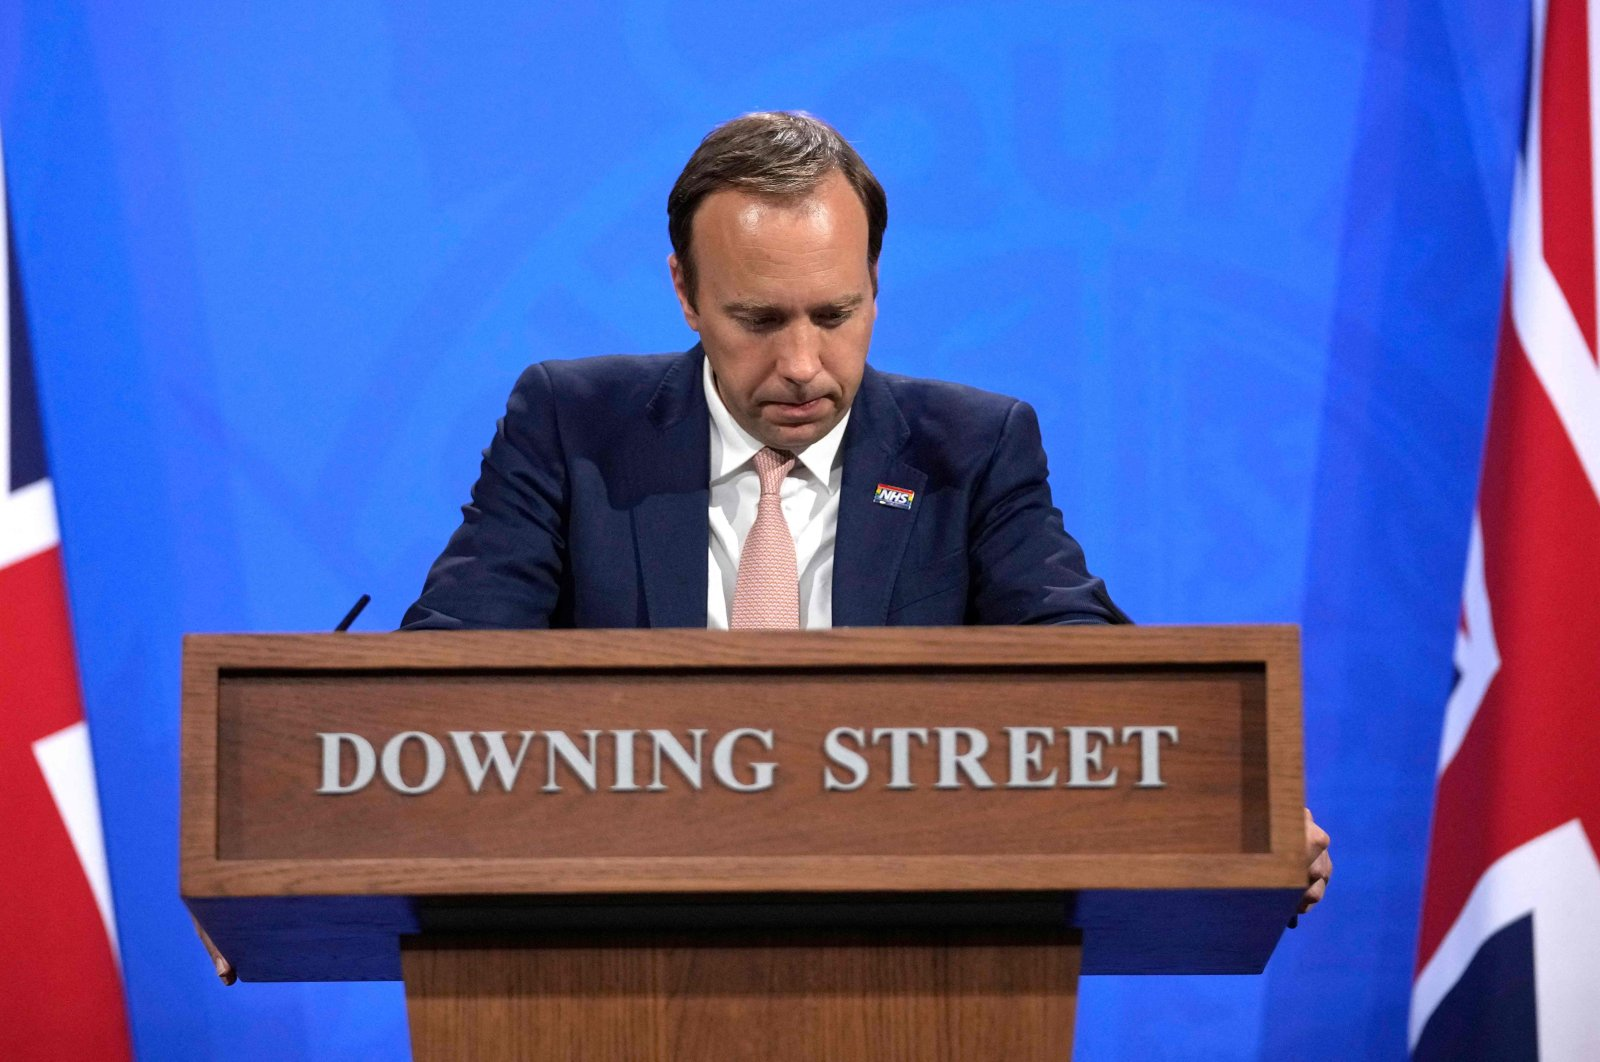 Britain's Health Secretary Matt Hancock gives an update on the coronavirus pandemic during a virtual press conference in Downing Street in central London, U.K., May 27, 2021. (AFP Photo)